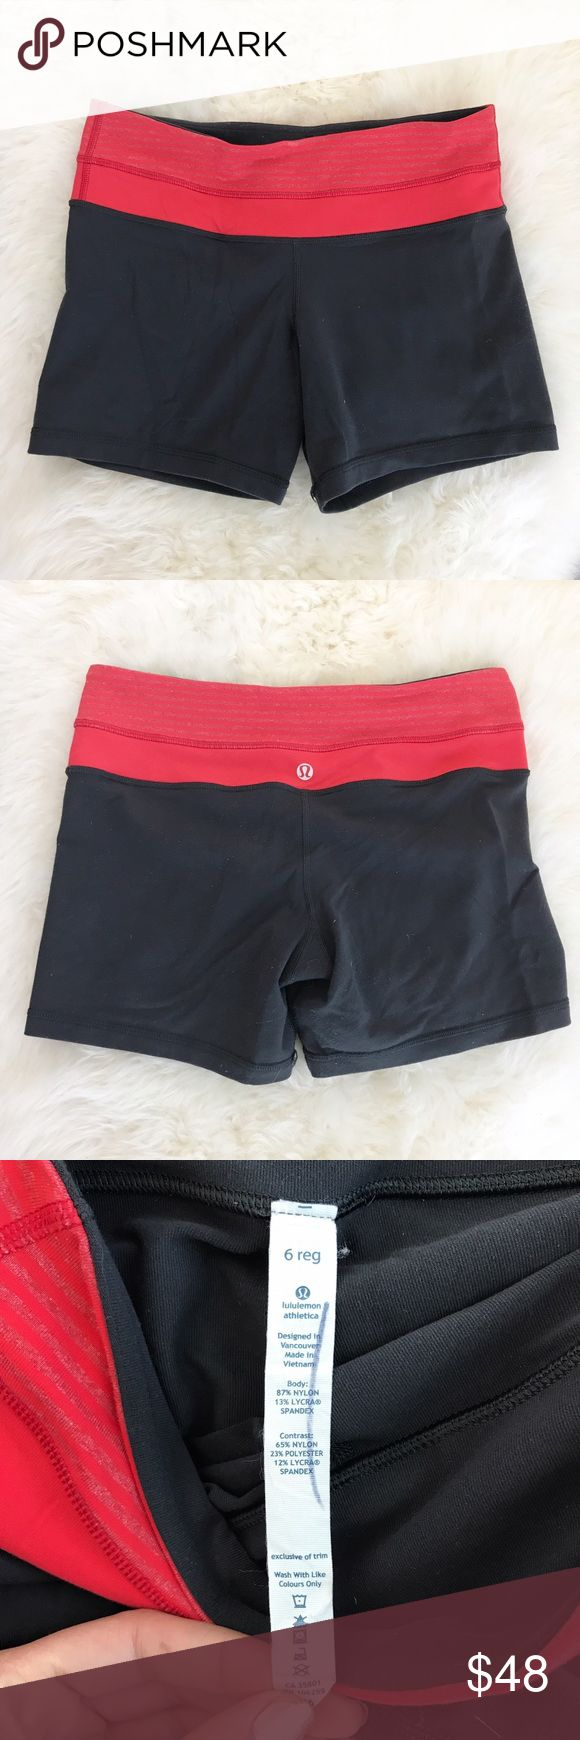 Lululemon Fitted Gray Athletic Shorts Fitted stretch silhouette. Set in stretch waistband with interior hidden pocket. Fit as a true size 6. NO TRADES. lululemon athletica Shorts